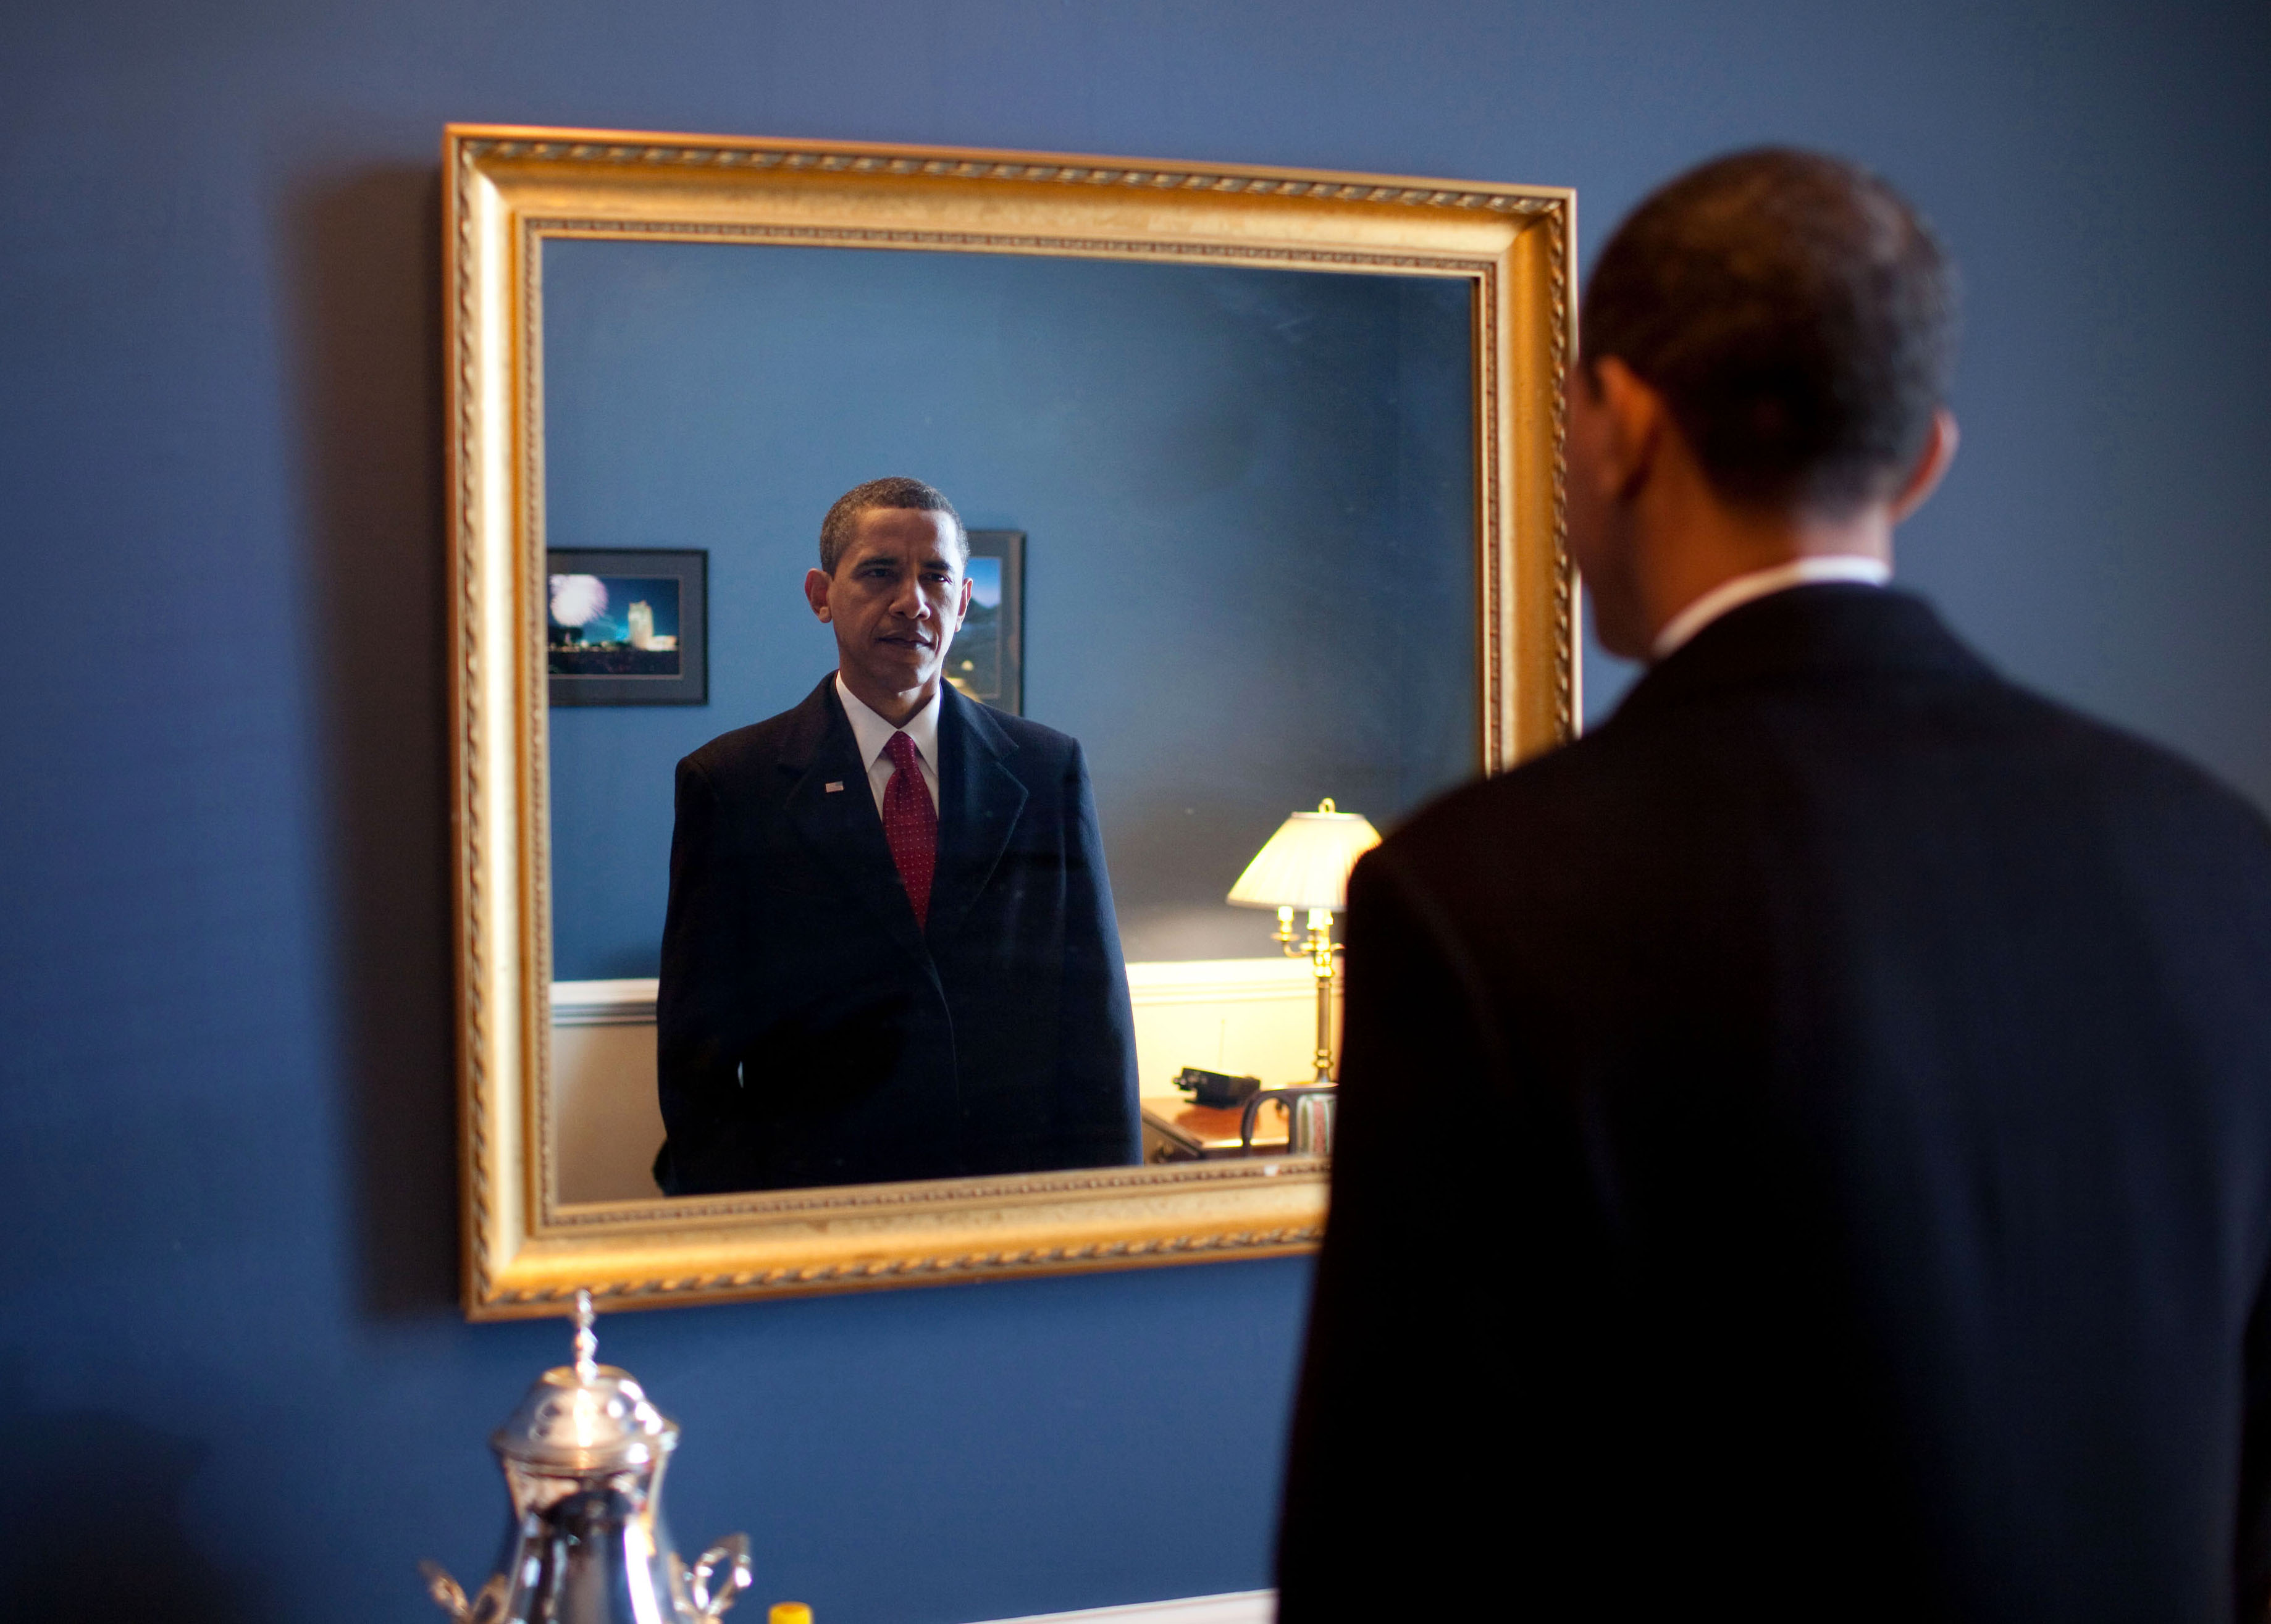 barack_obama_takes_one_last_look_in_the_mirror_before_going_out_to_take_oath_jan_20_2009.jpg